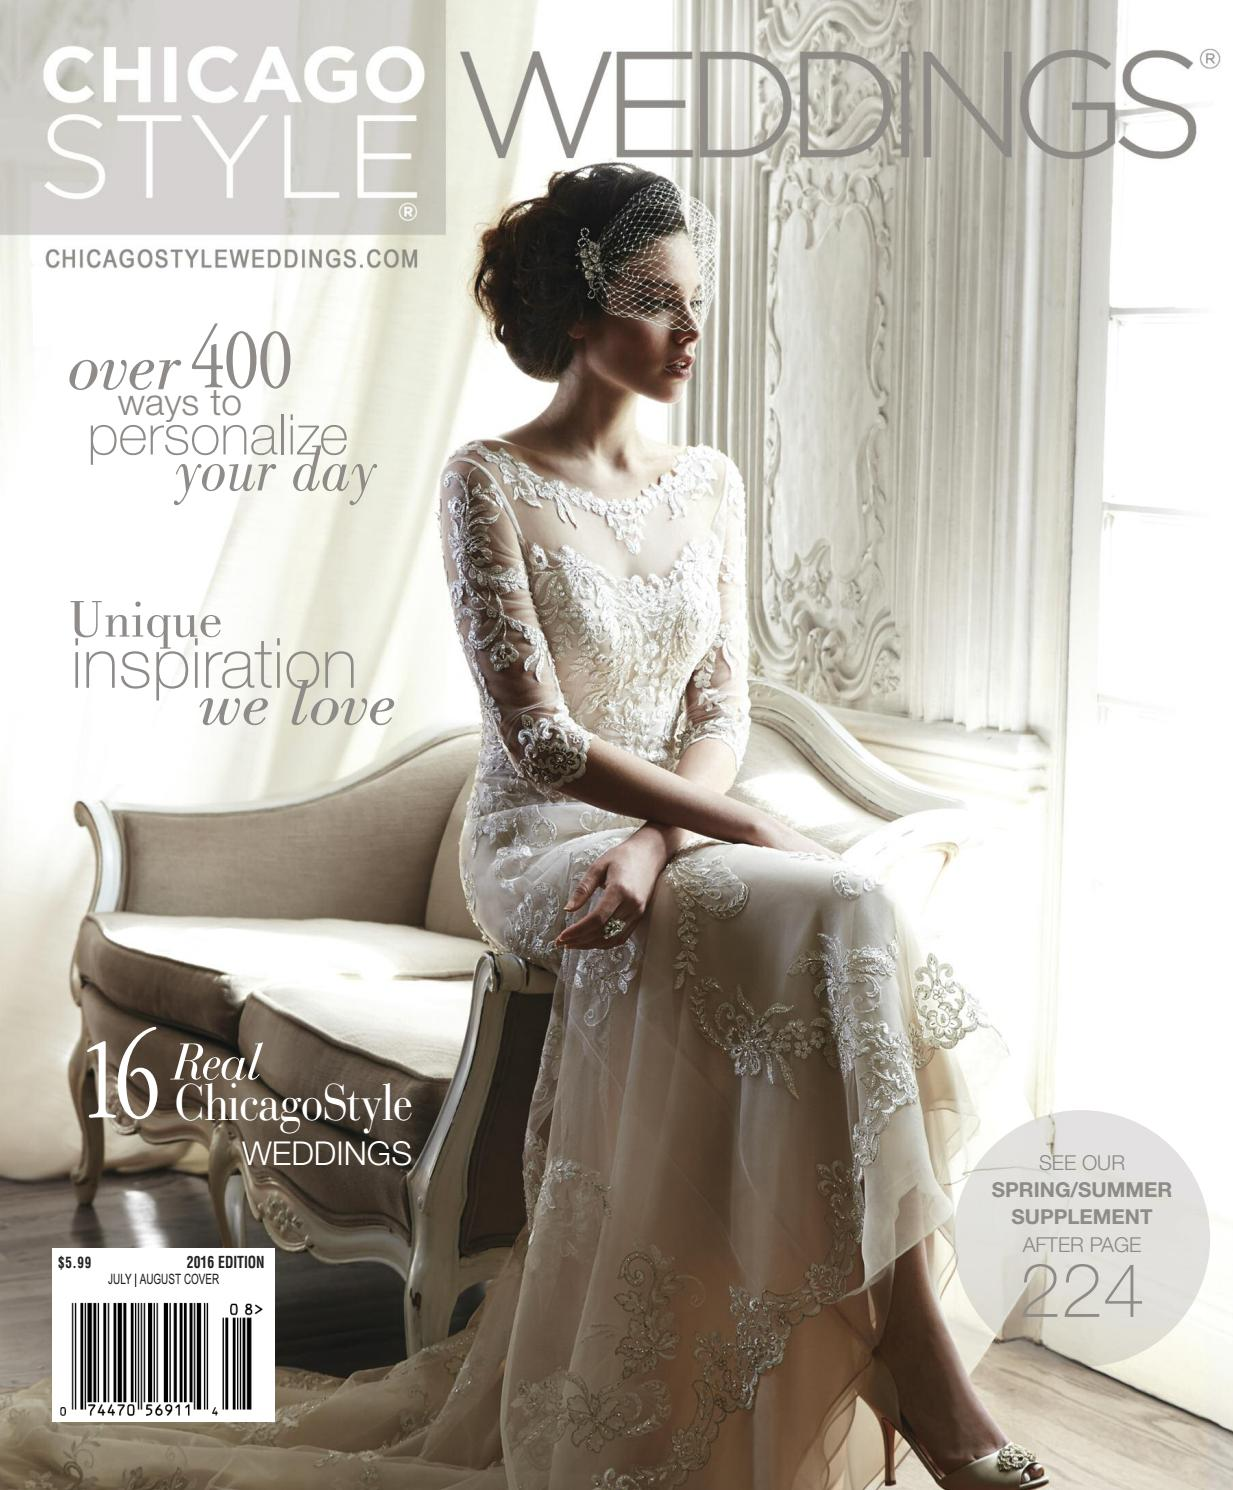 debc39e5c49 ChicagoStyle Weddings 2016 with Spring Supplement by ChicagoStyle Weddings  - issuu